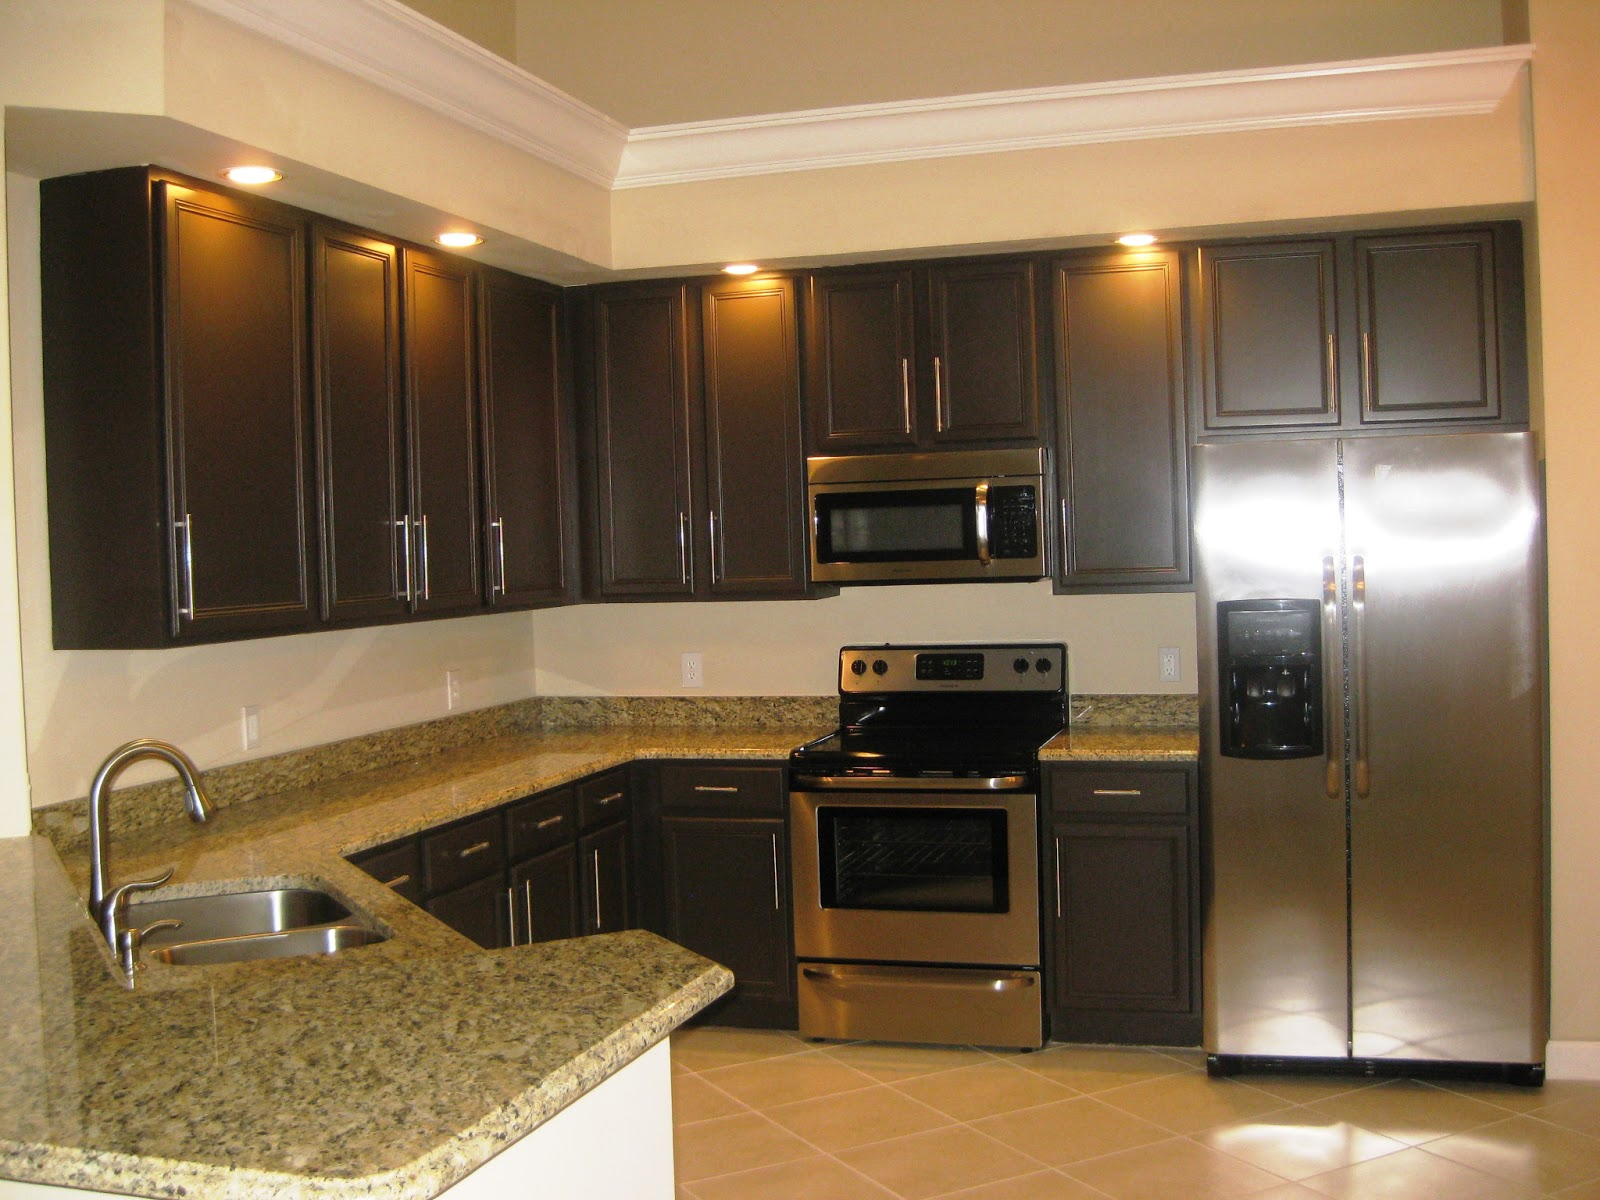 Colors Kitchen Cabinets Array Of Color Inc Paint Kitchen Cabinets